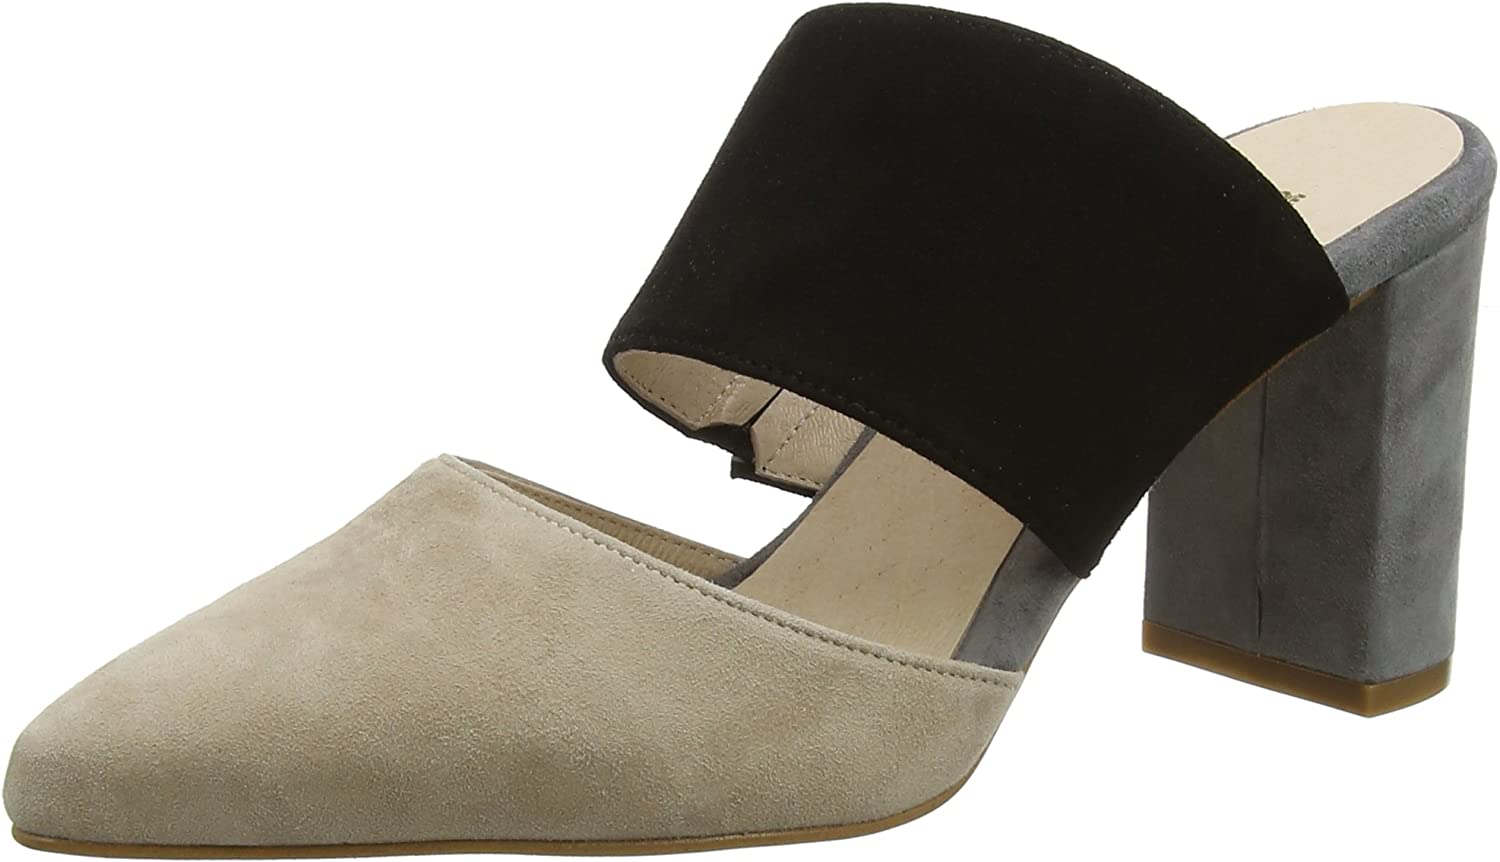 SHOE THE BEAR Women's Selma S in Dark Taupe